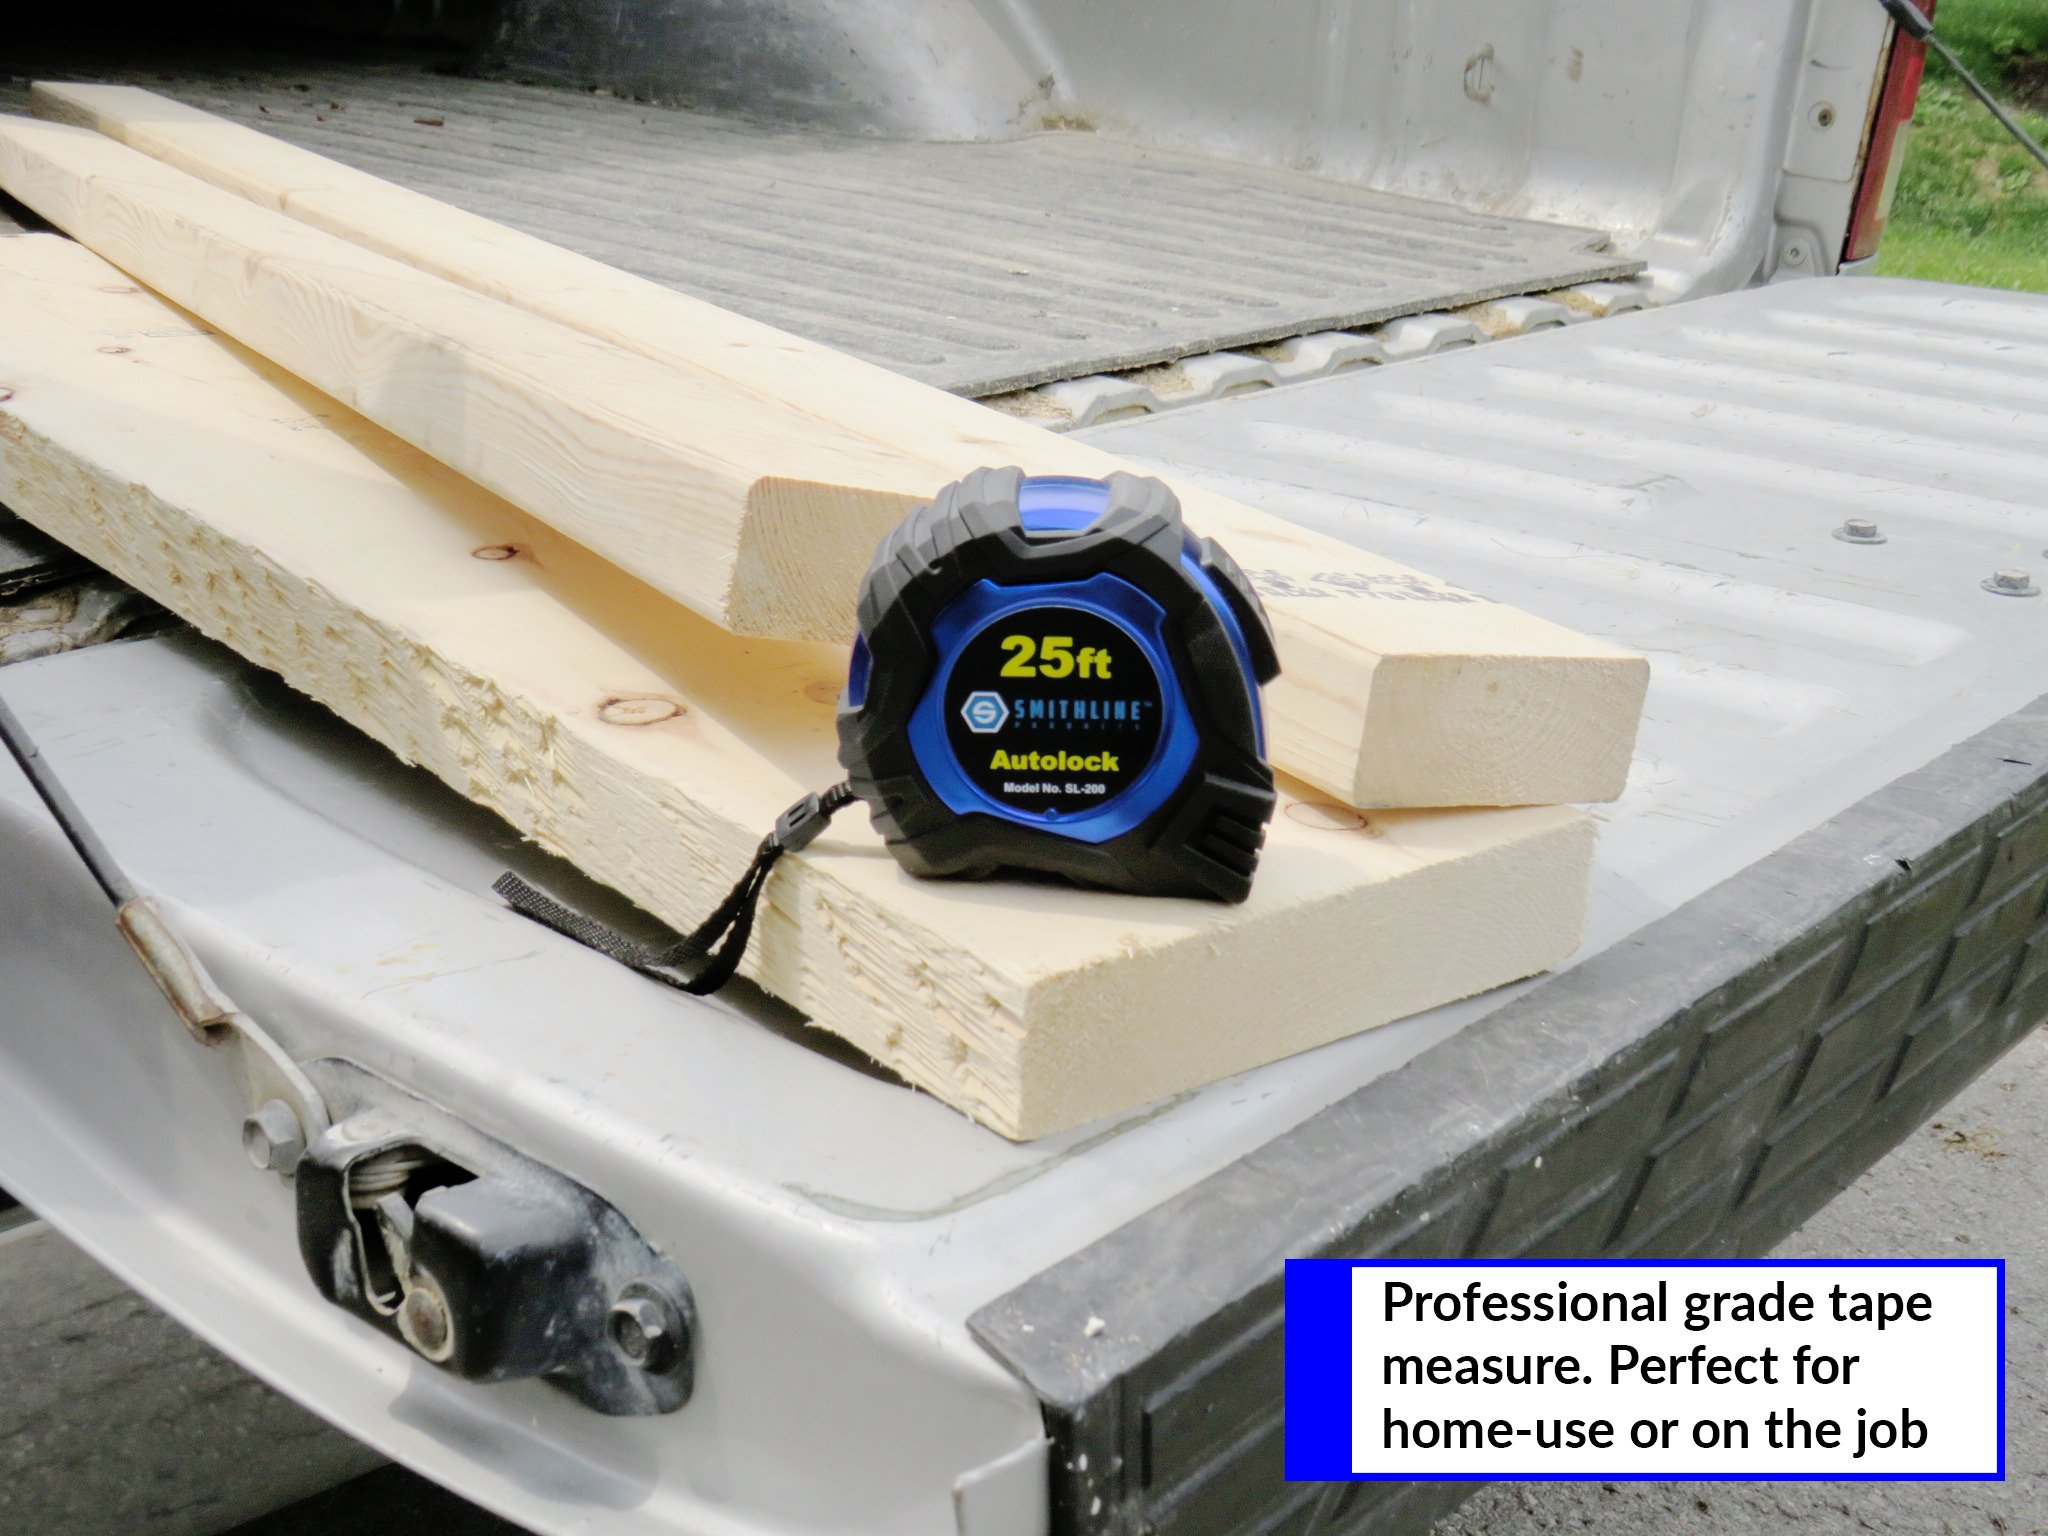 Smithline SL-200 Professional Grade Auto-lock Tape Measure by Smithline Products (Image #6)